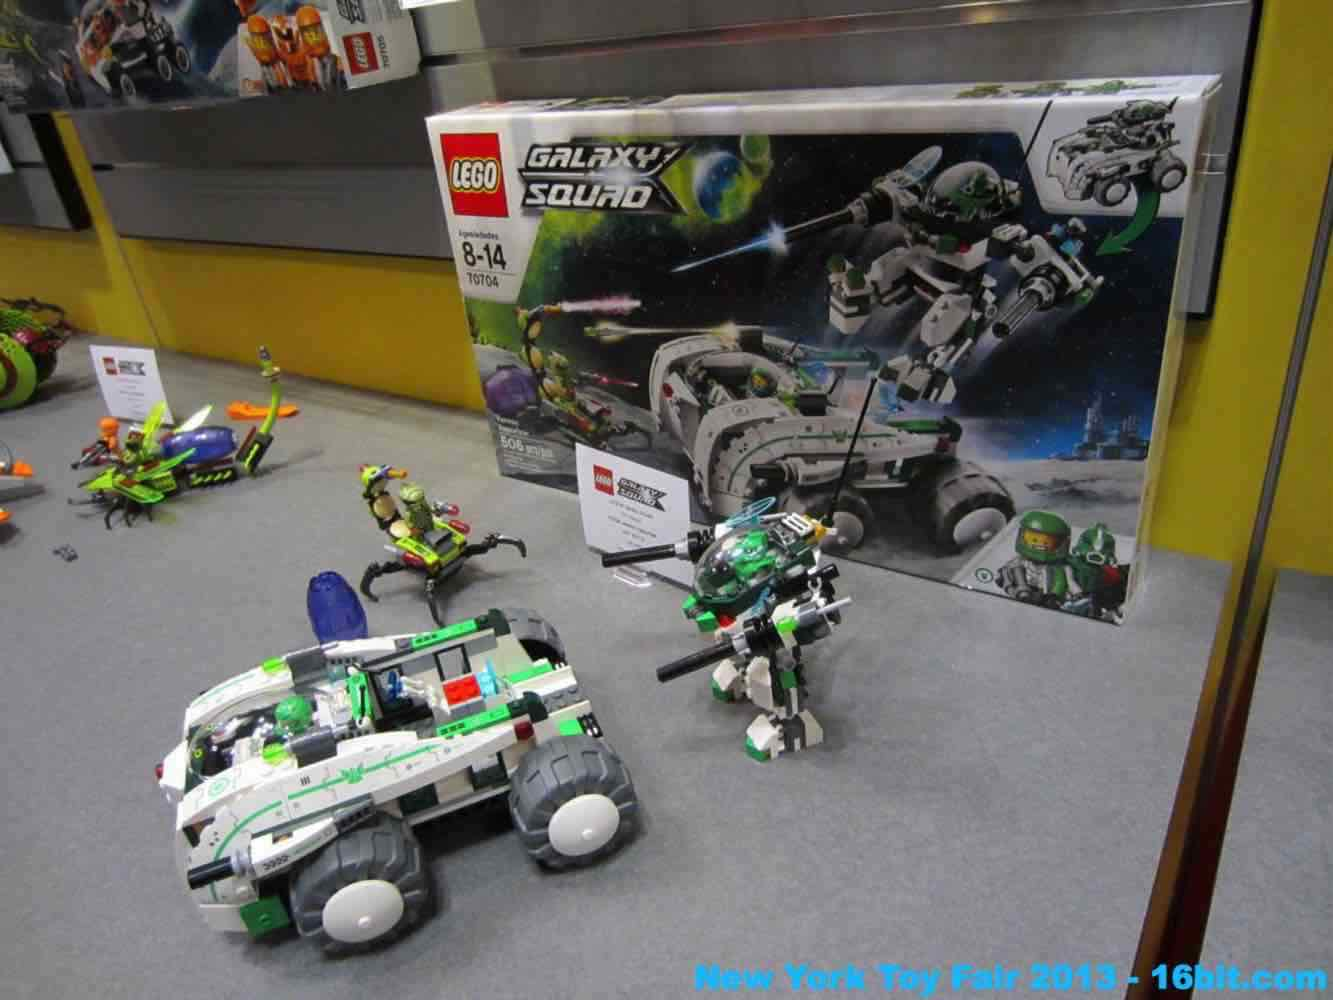 16bit Com Toy Fair Coverage Of Lego Galaxy Squad From